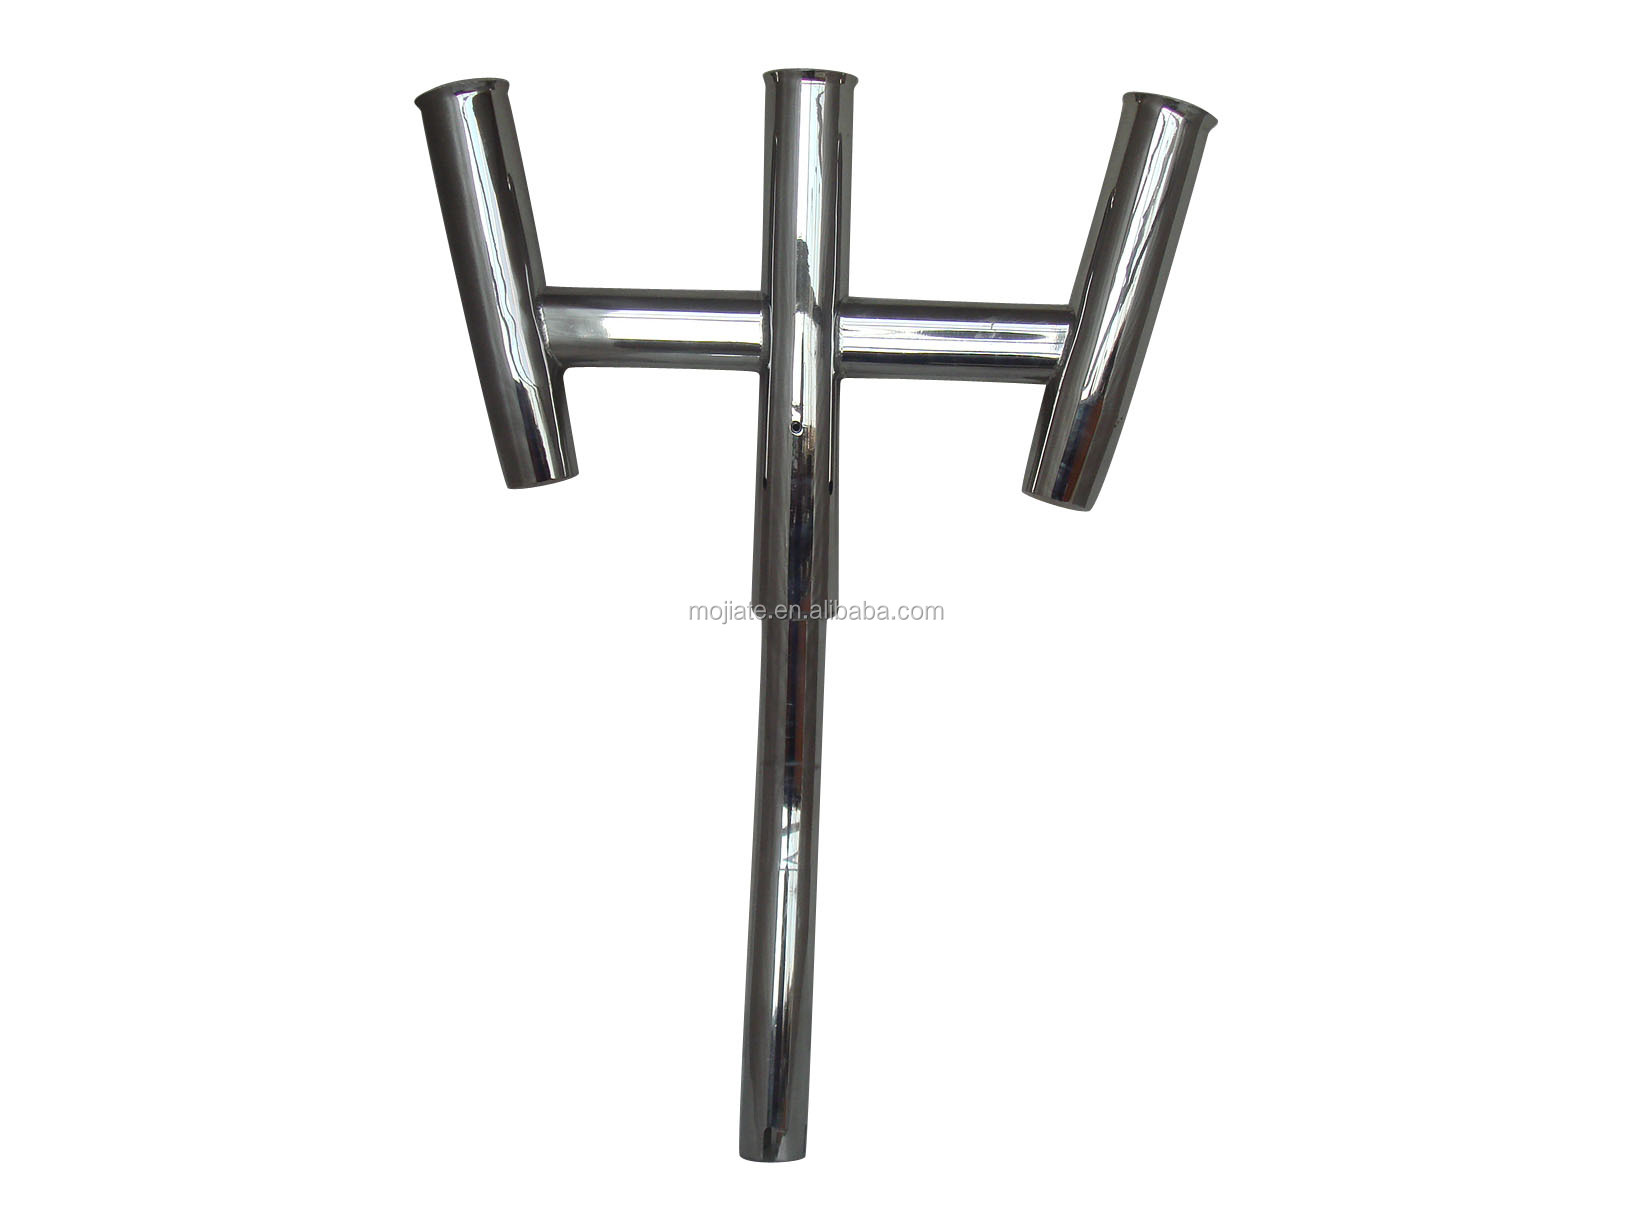 Multiple Fishing Rod Holder Aluminum Marine Hardware Buy